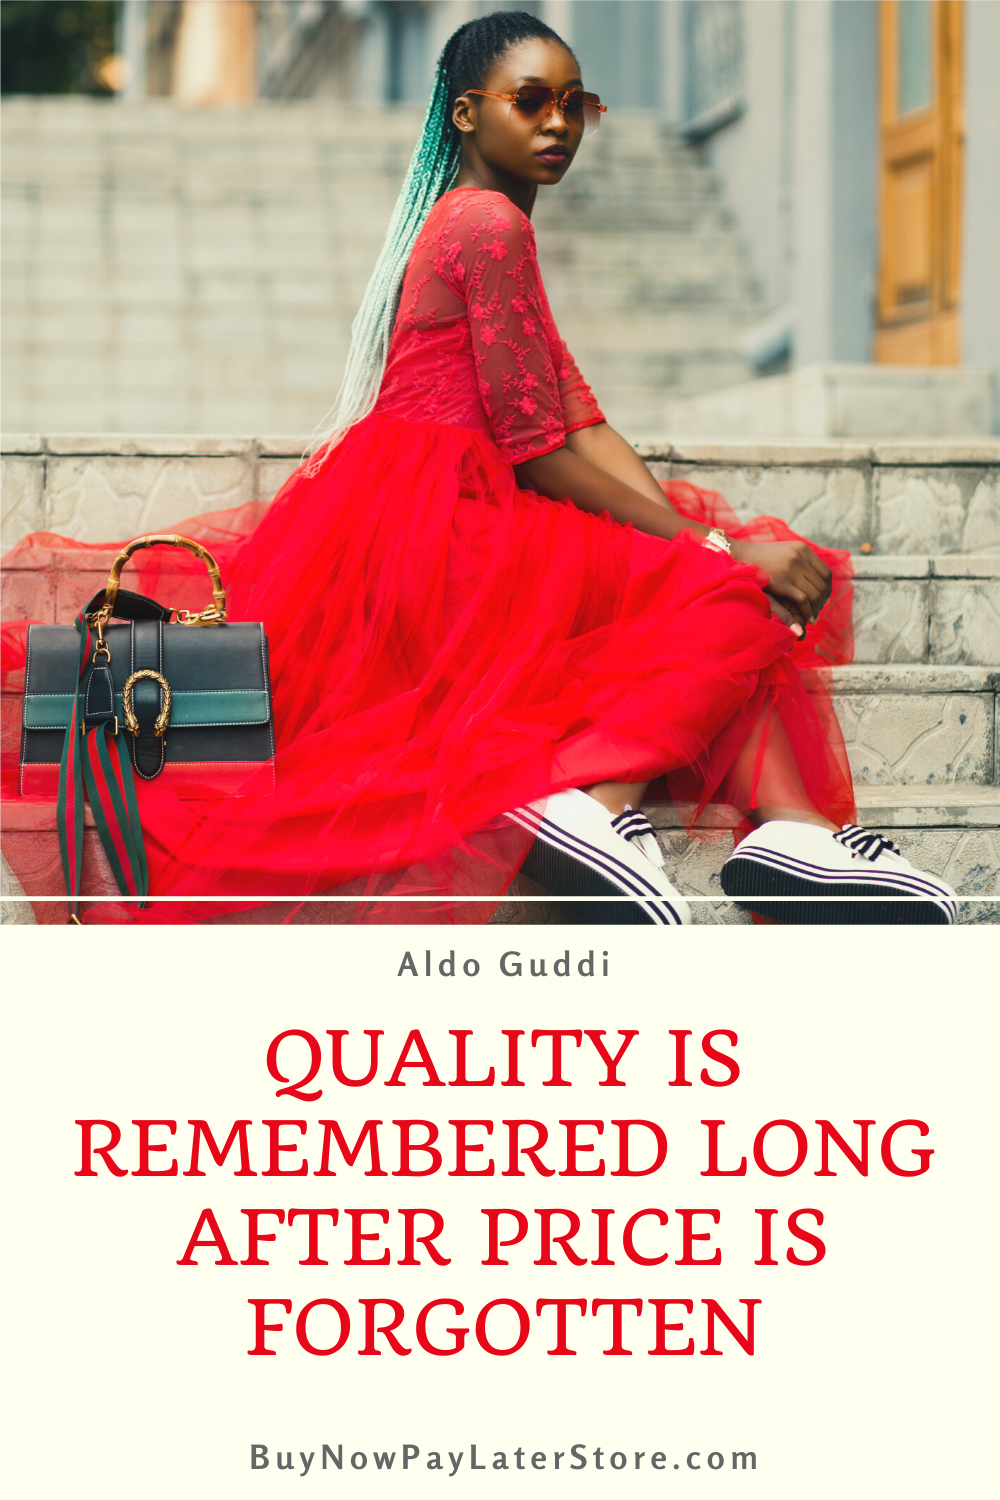 Quality is remembered long after price is forgotten